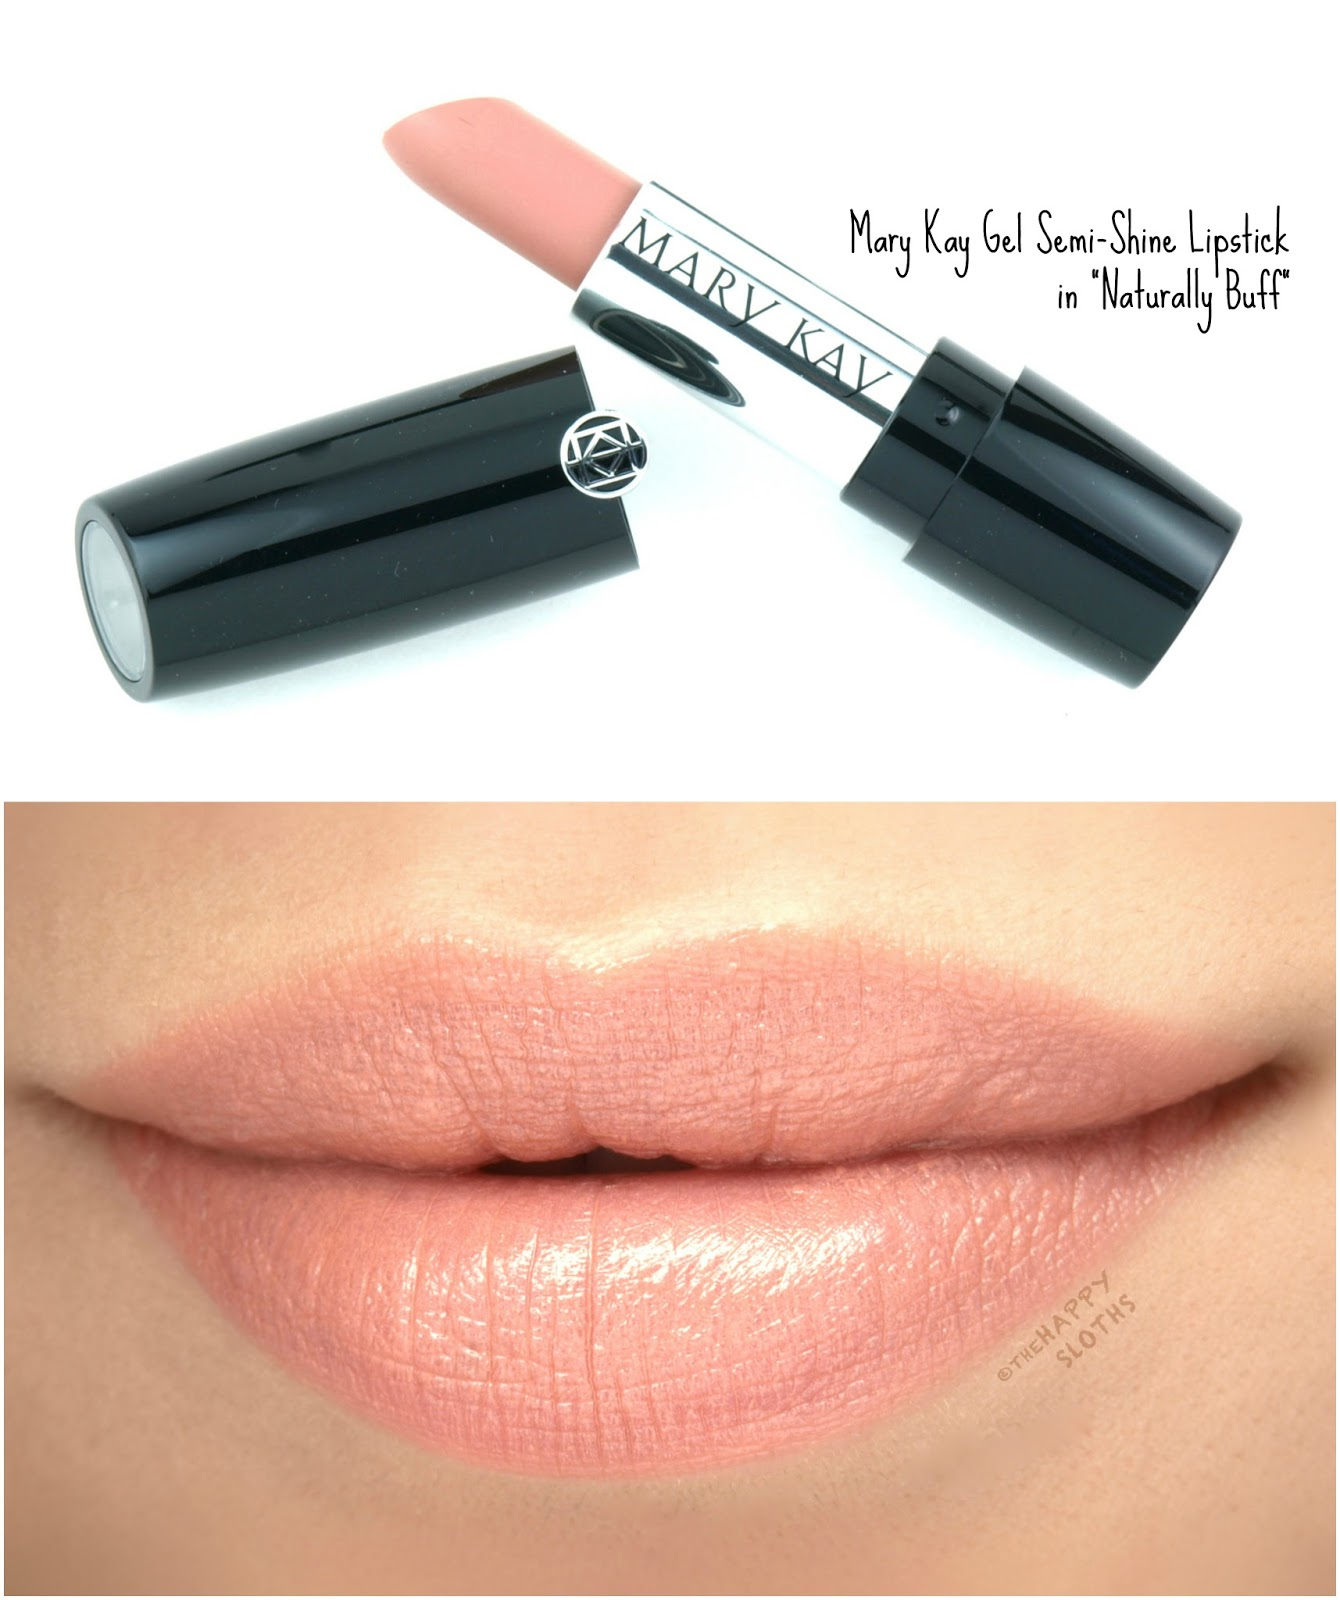 "Mary Kay Gel Semi-Shine Lipstick in ""Naturally Buff"": Review and Swatches"